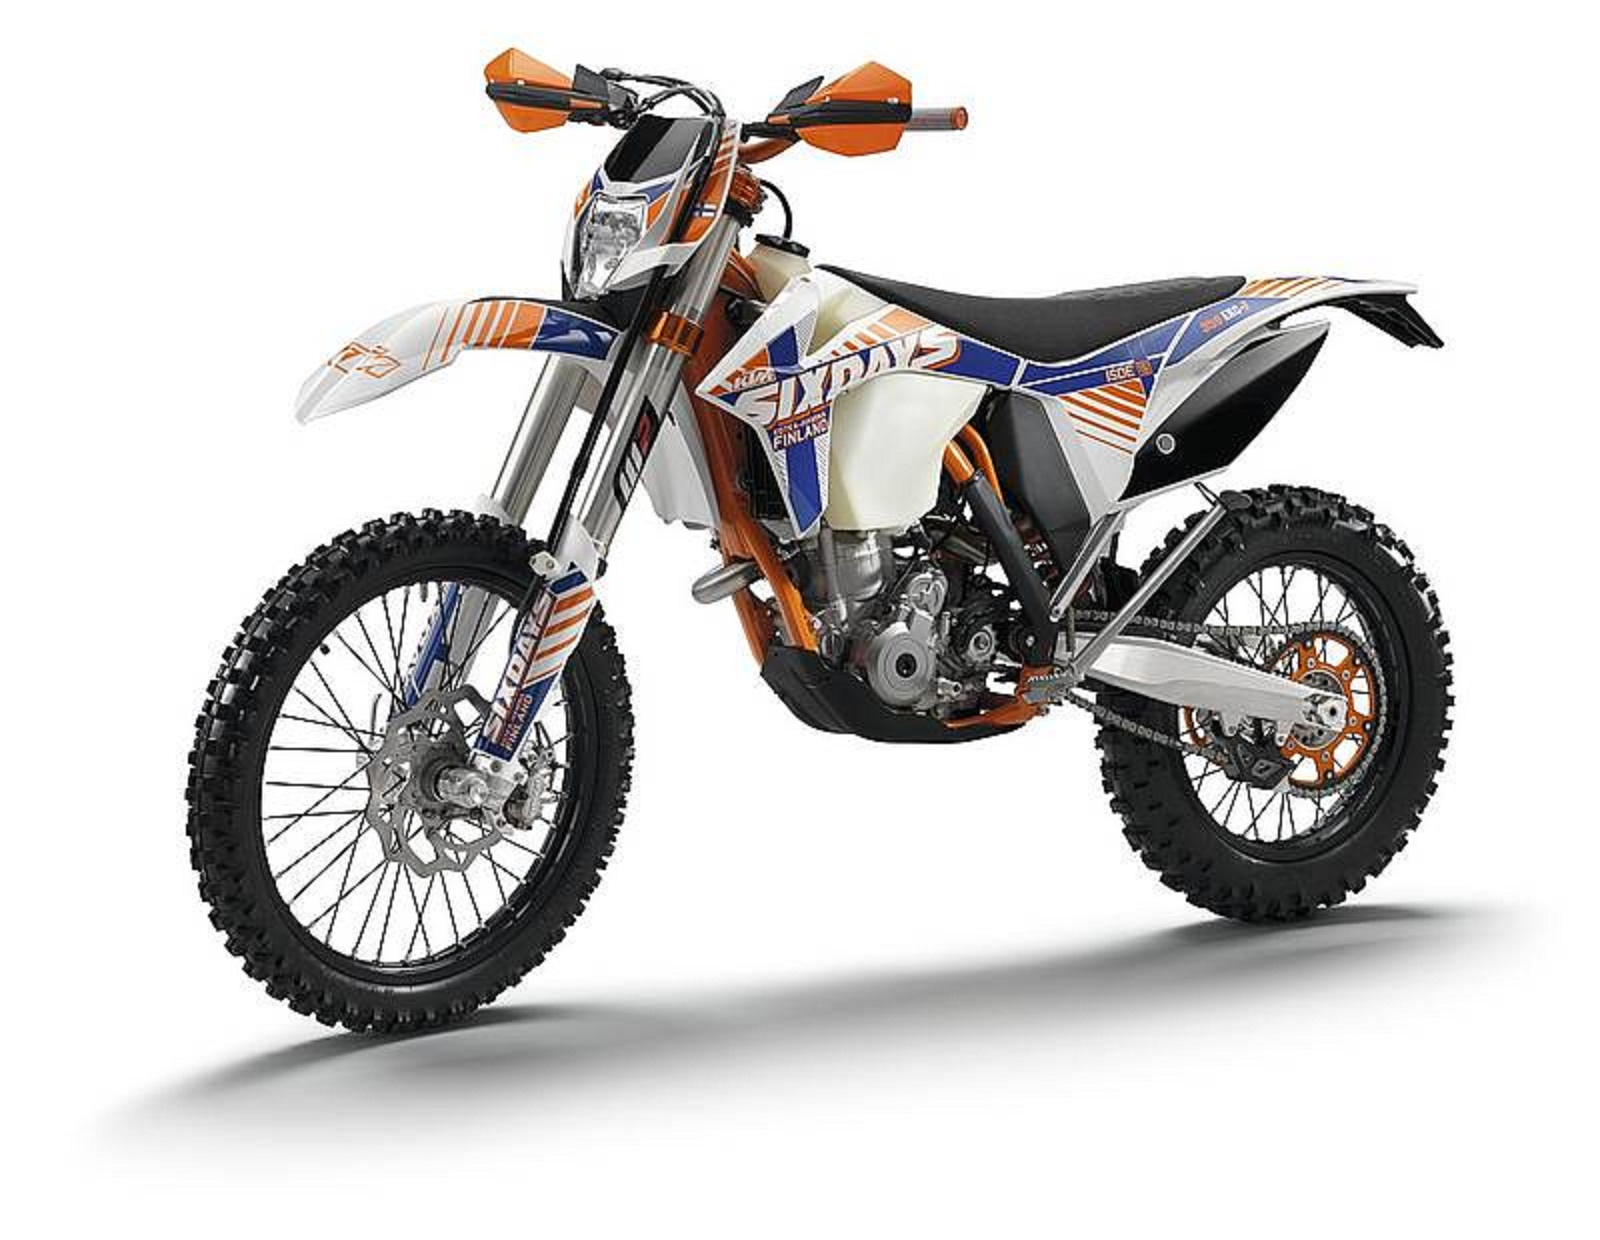 2012 ktm 500 exc six days review gallery top speed. Black Bedroom Furniture Sets. Home Design Ideas